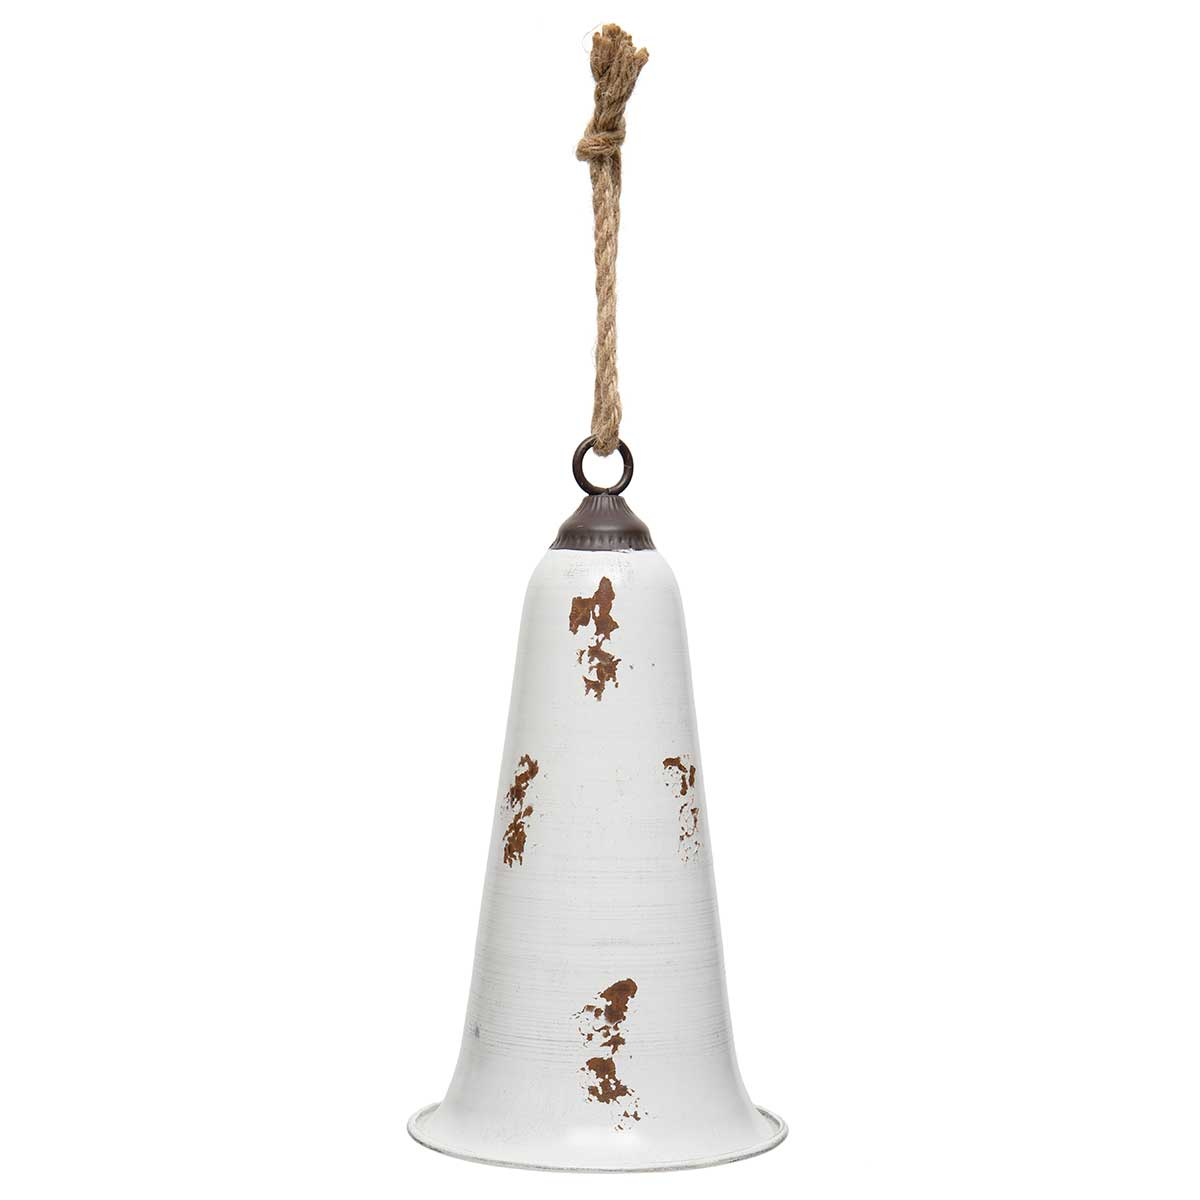 ANTIQUE WHITE METAL HOLIDAY BELL